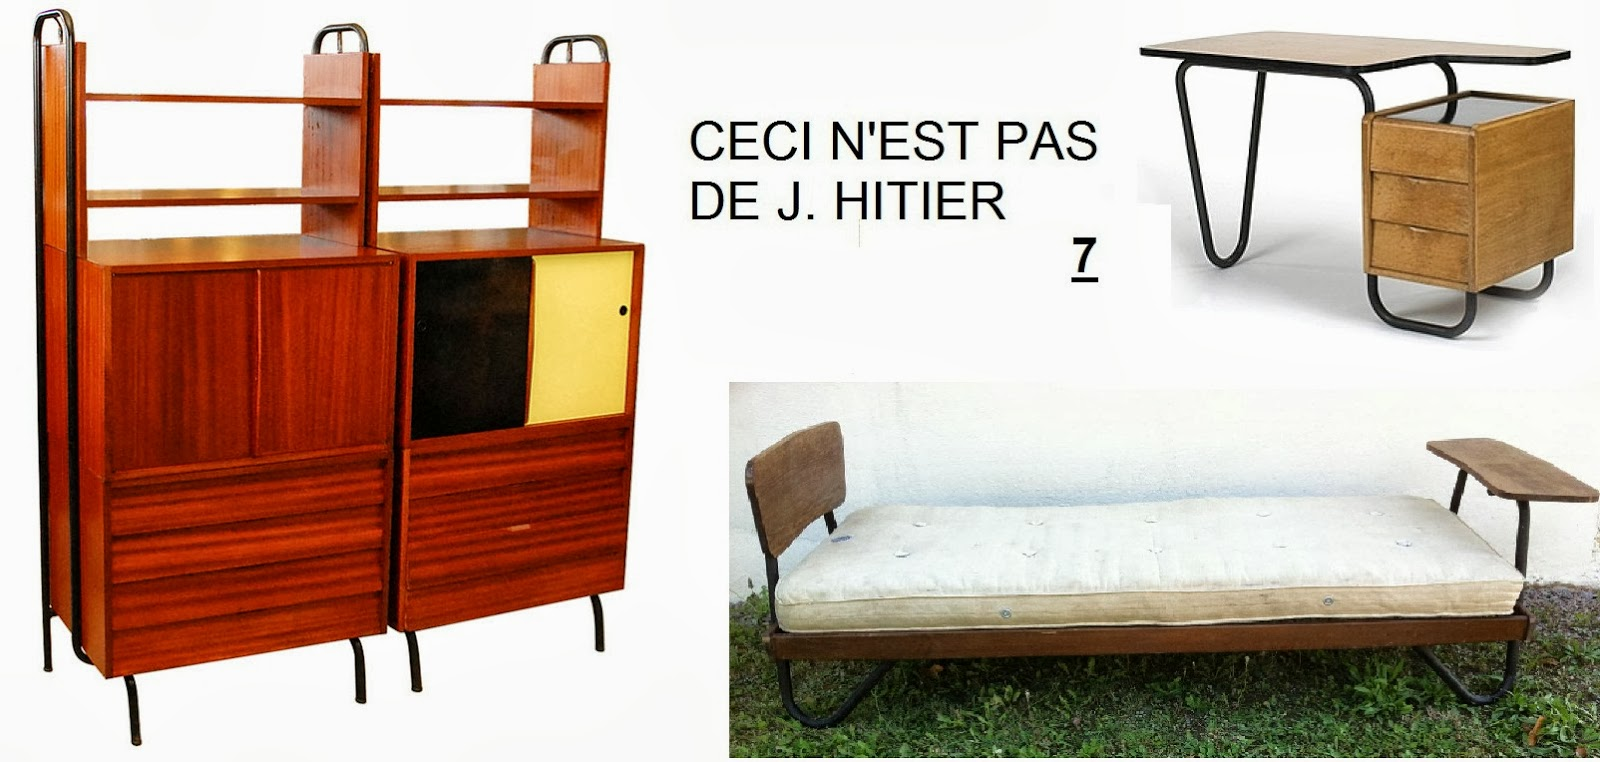 art utile ceci n 39 est pas mais qu 39 est ce. Black Bedroom Furniture Sets. Home Design Ideas